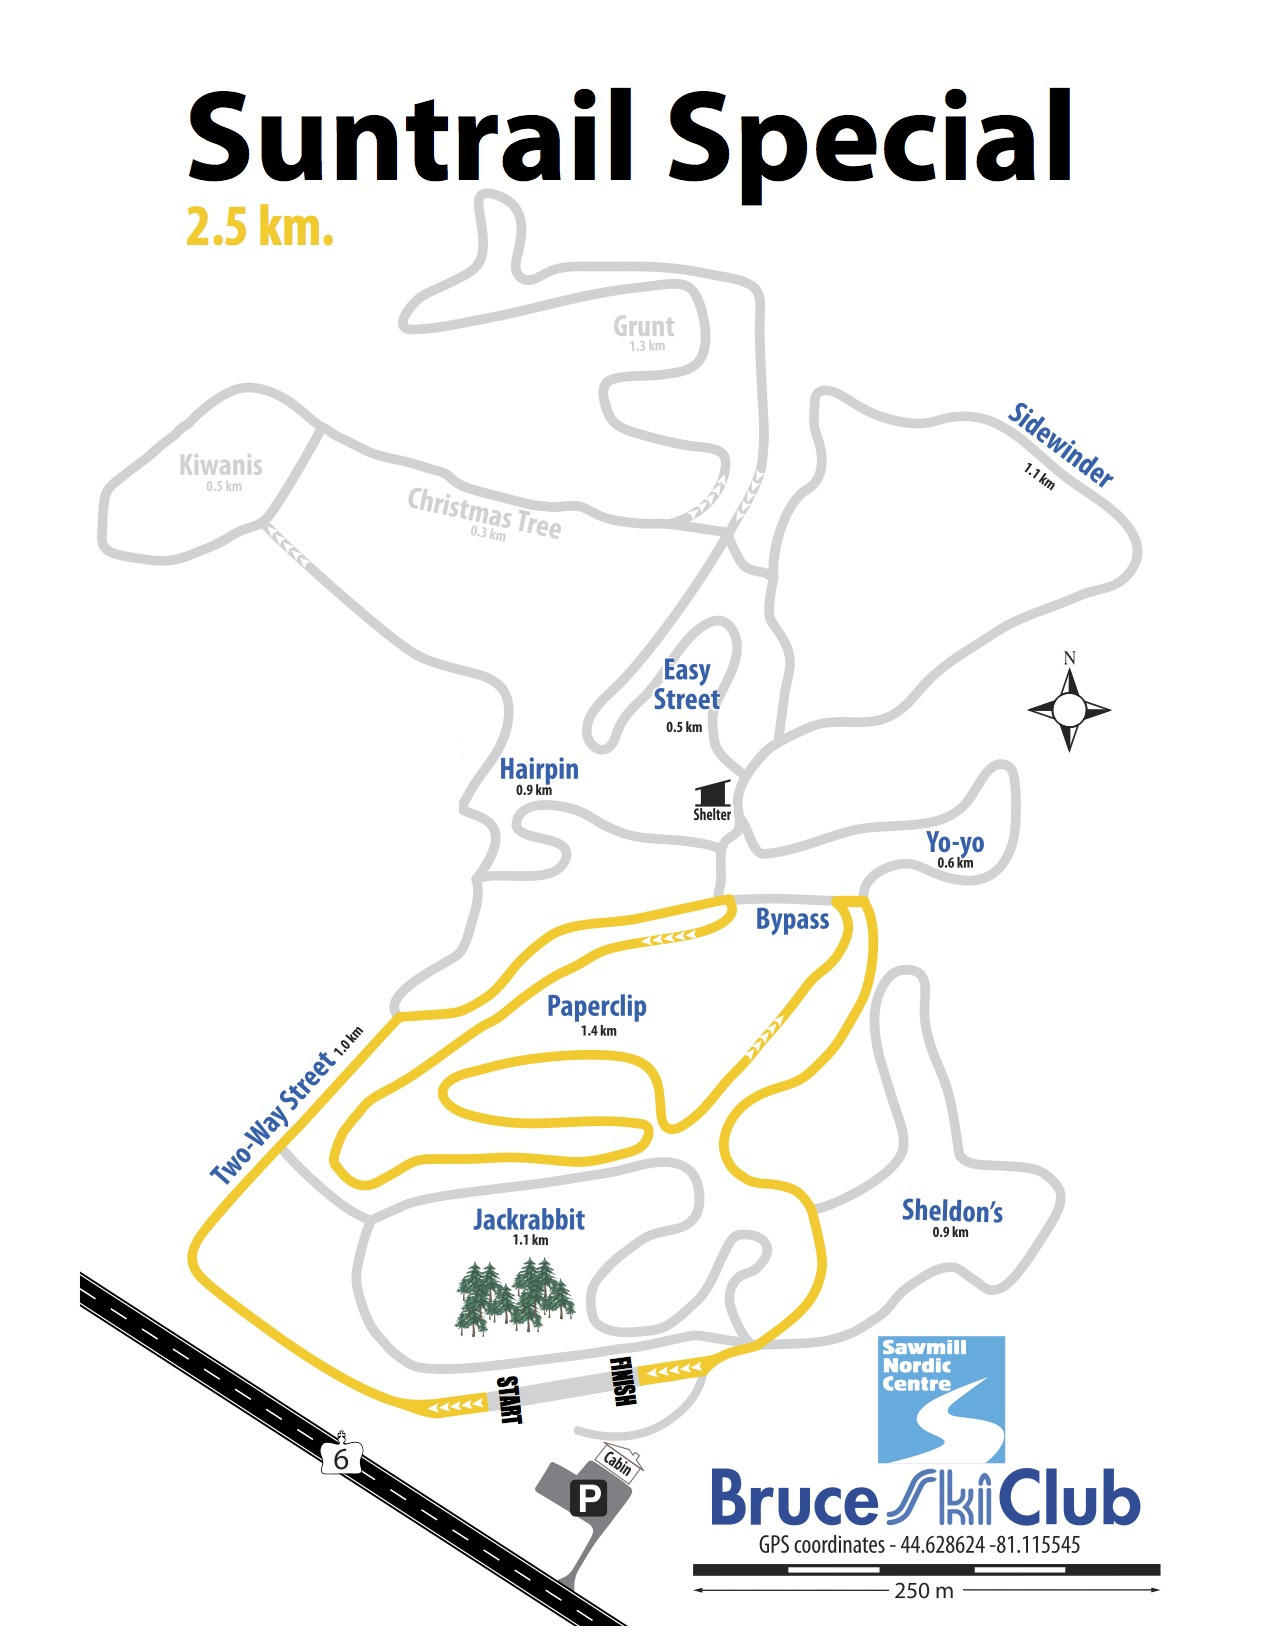 2019 Suntrail Special Cross-Country Ski Race Map – 2.5 km